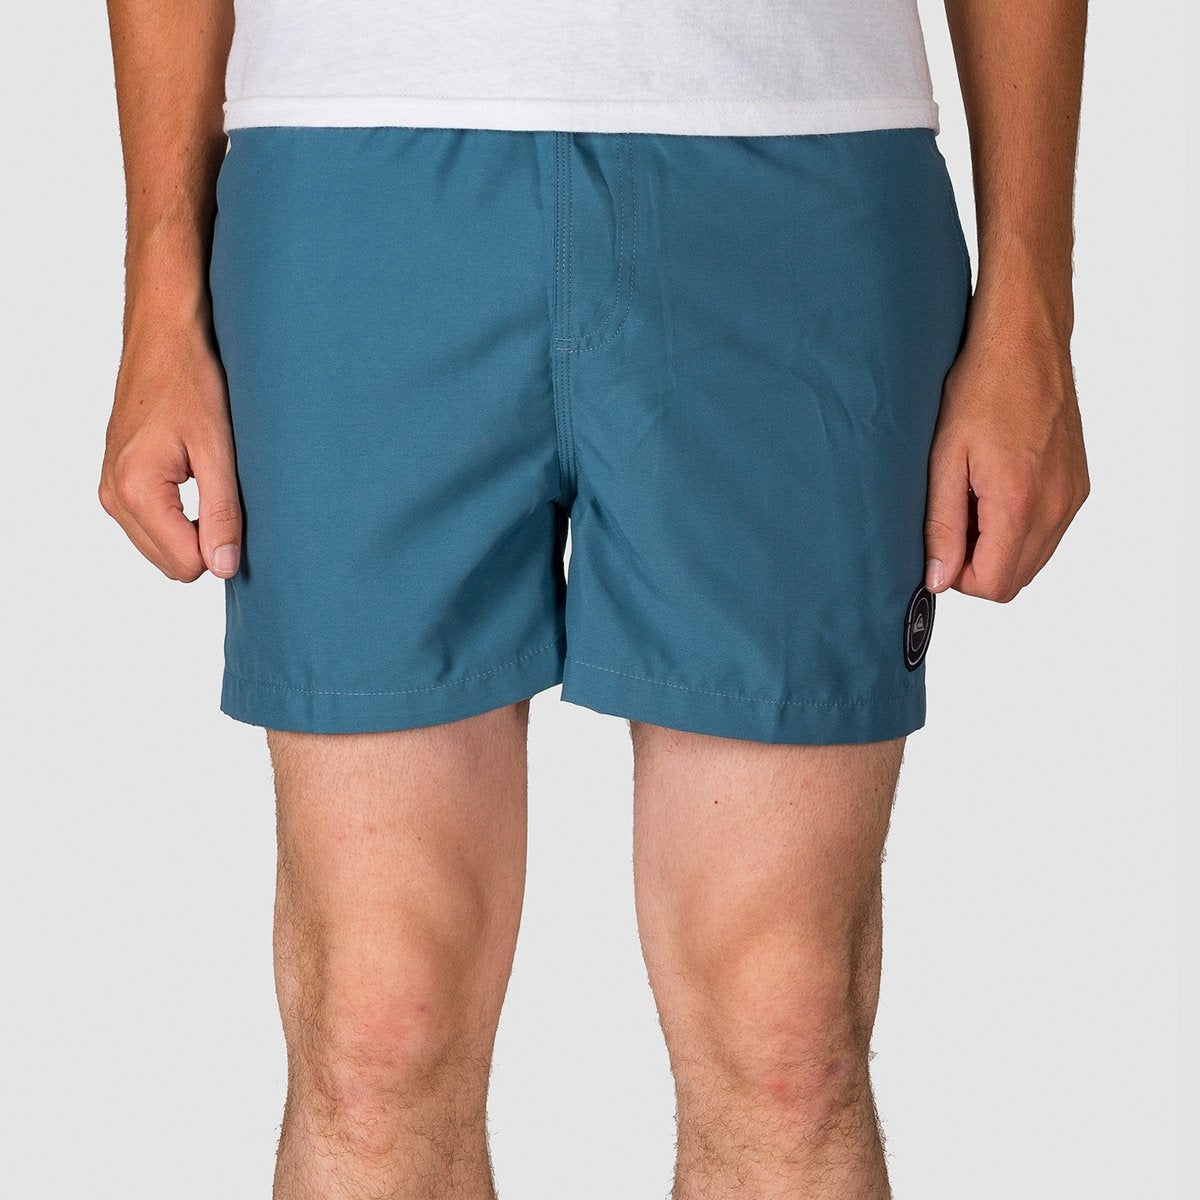 Quiksilver Everyday 15 Swim Shorts Real Teal - Clothing